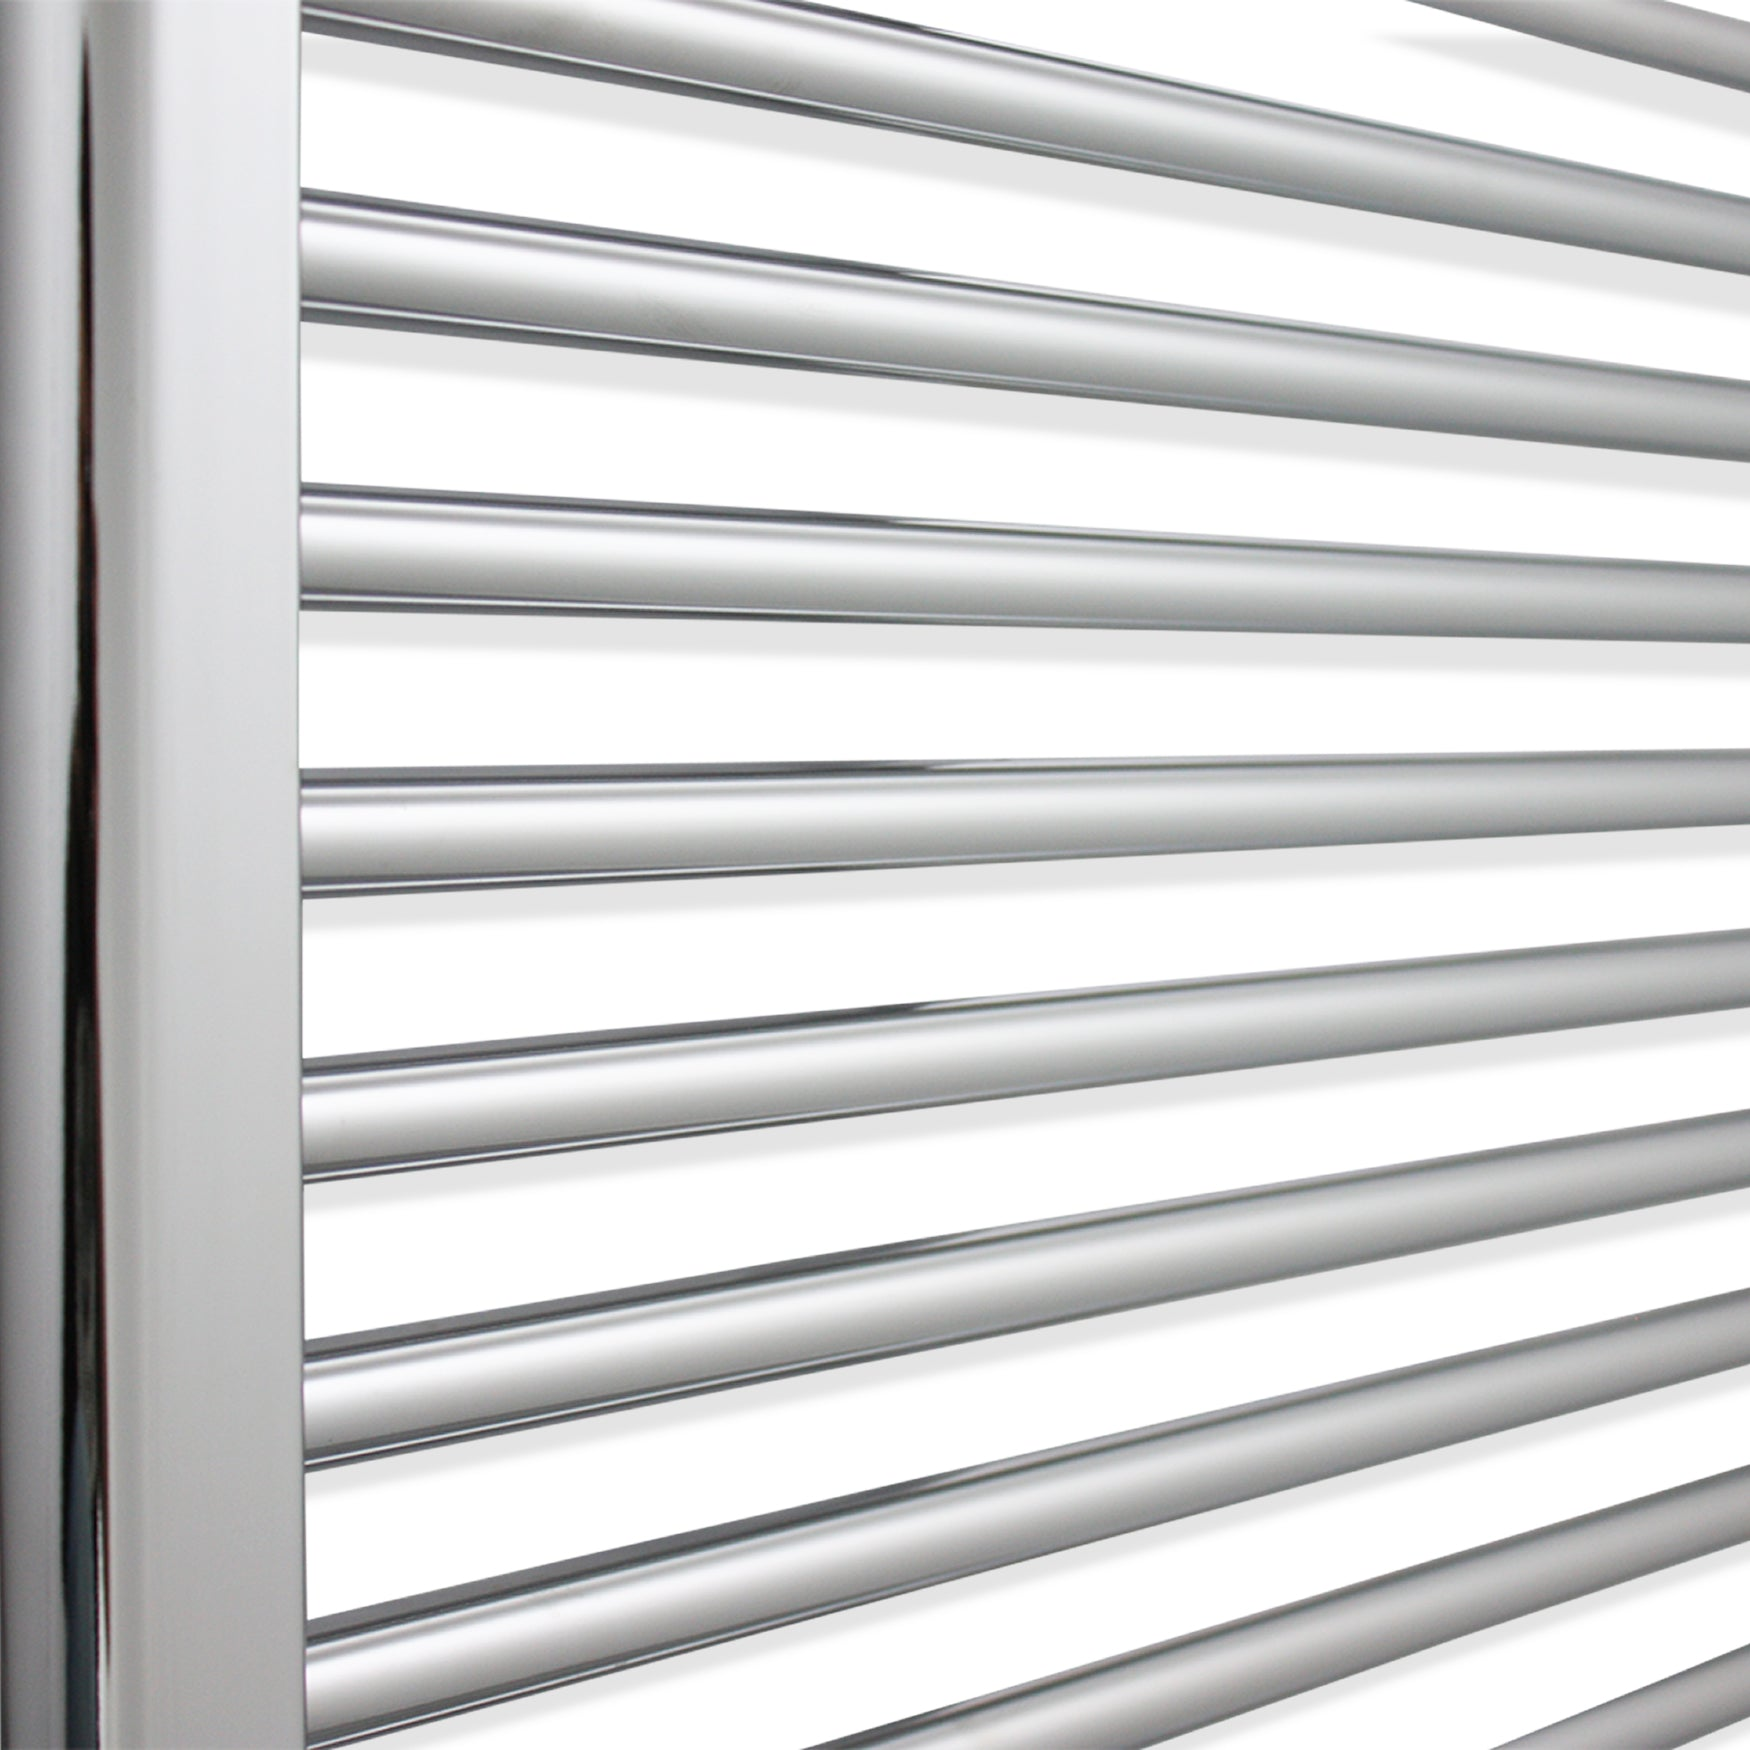 400mm Wide 1000mm High Curved Chrome Heated Towel Rail Radiator HTR